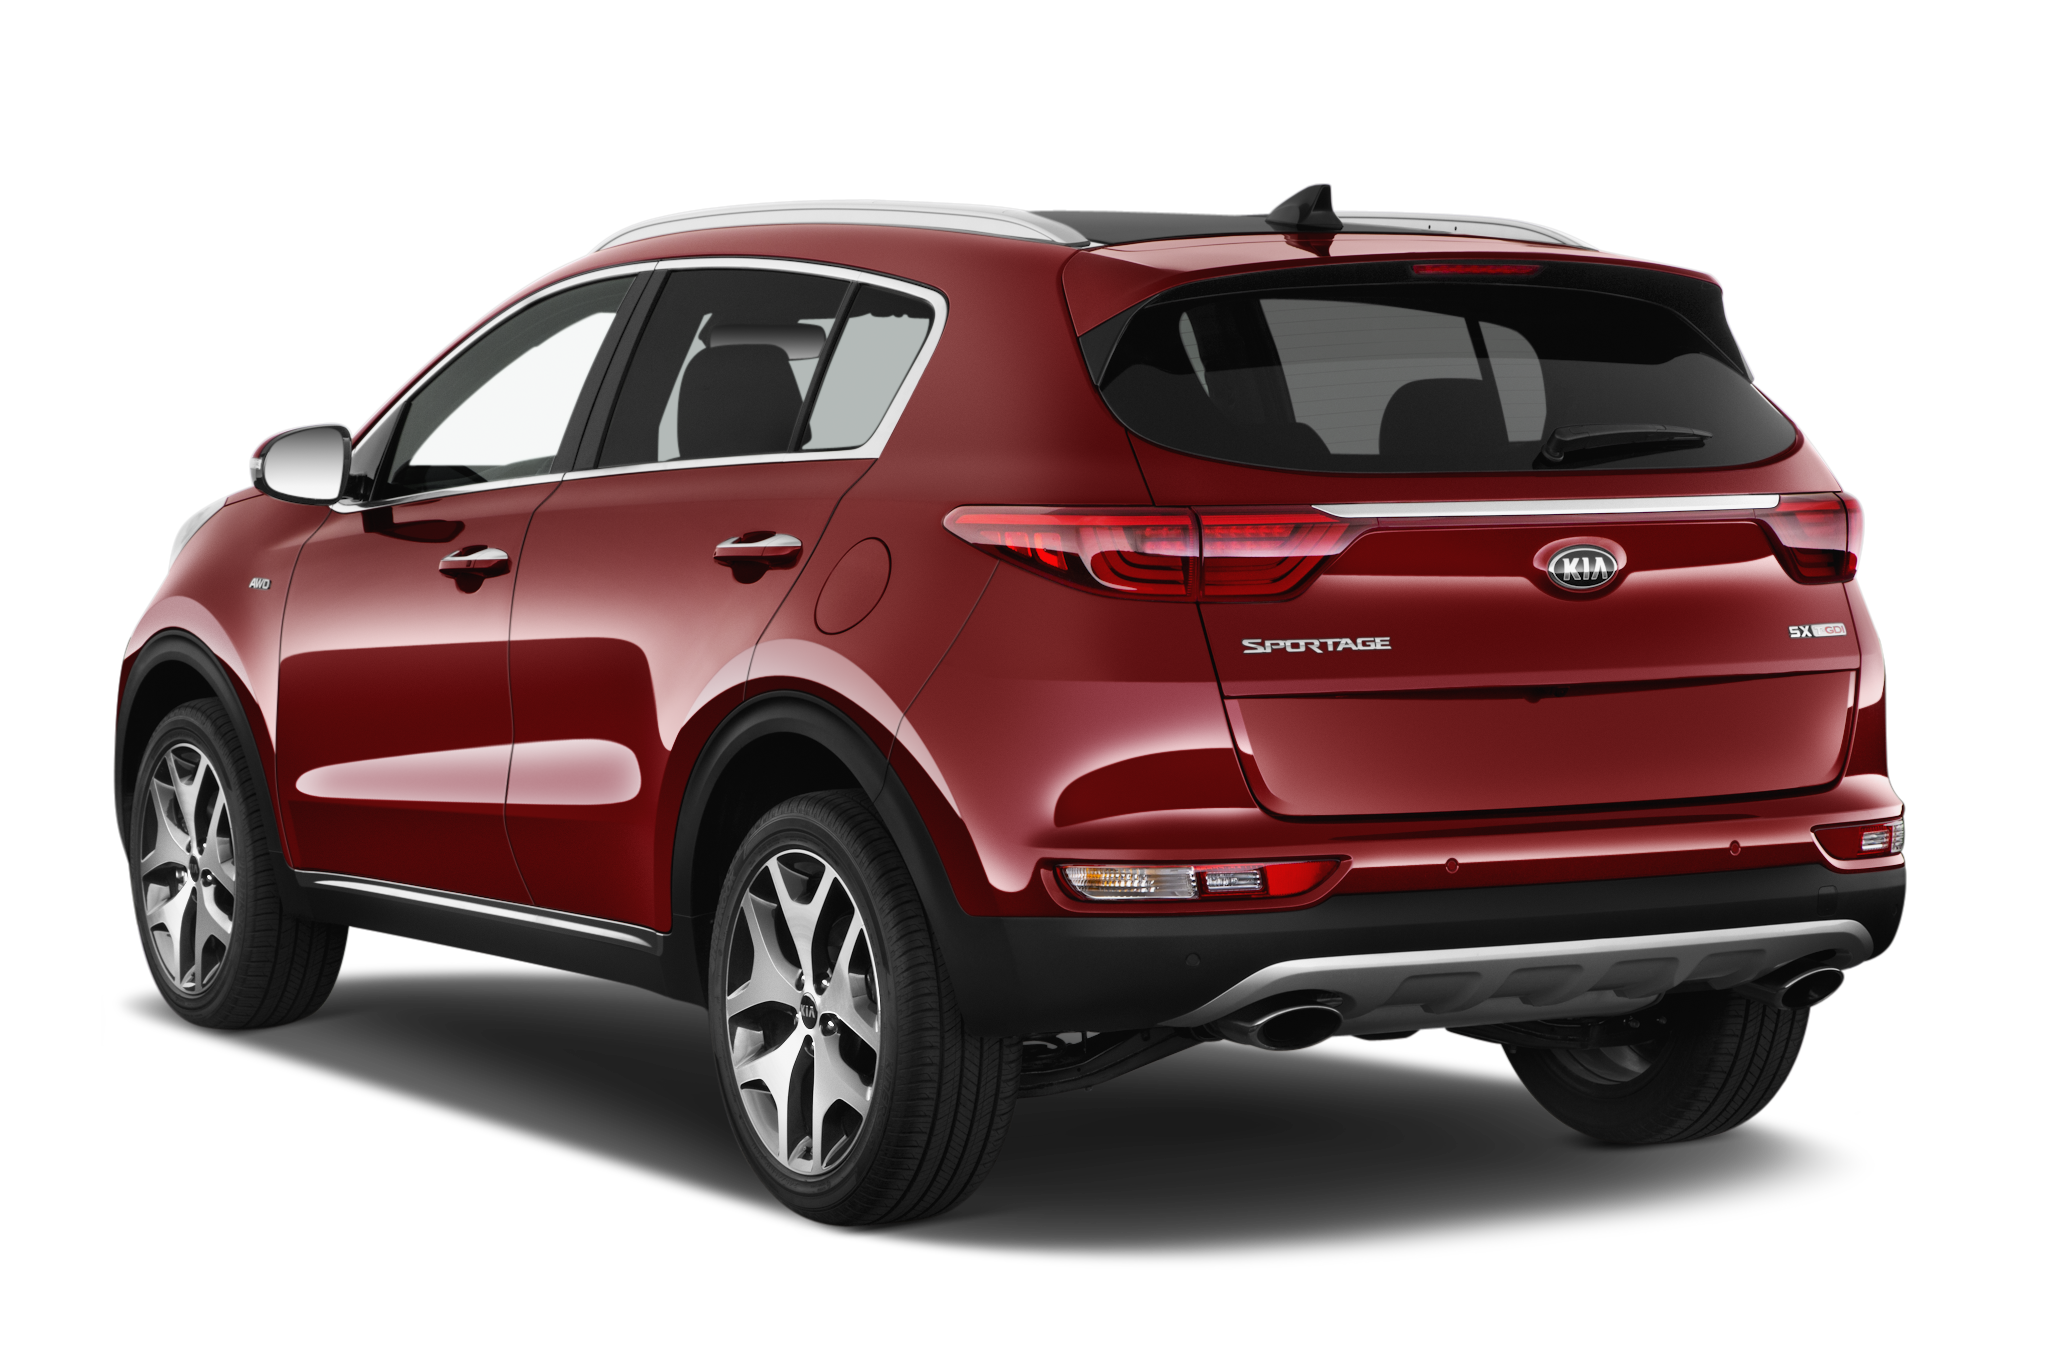 kia sportage sx kia sportage suv 2016 kia canada photo. Black Bedroom Furniture Sets. Home Design Ideas